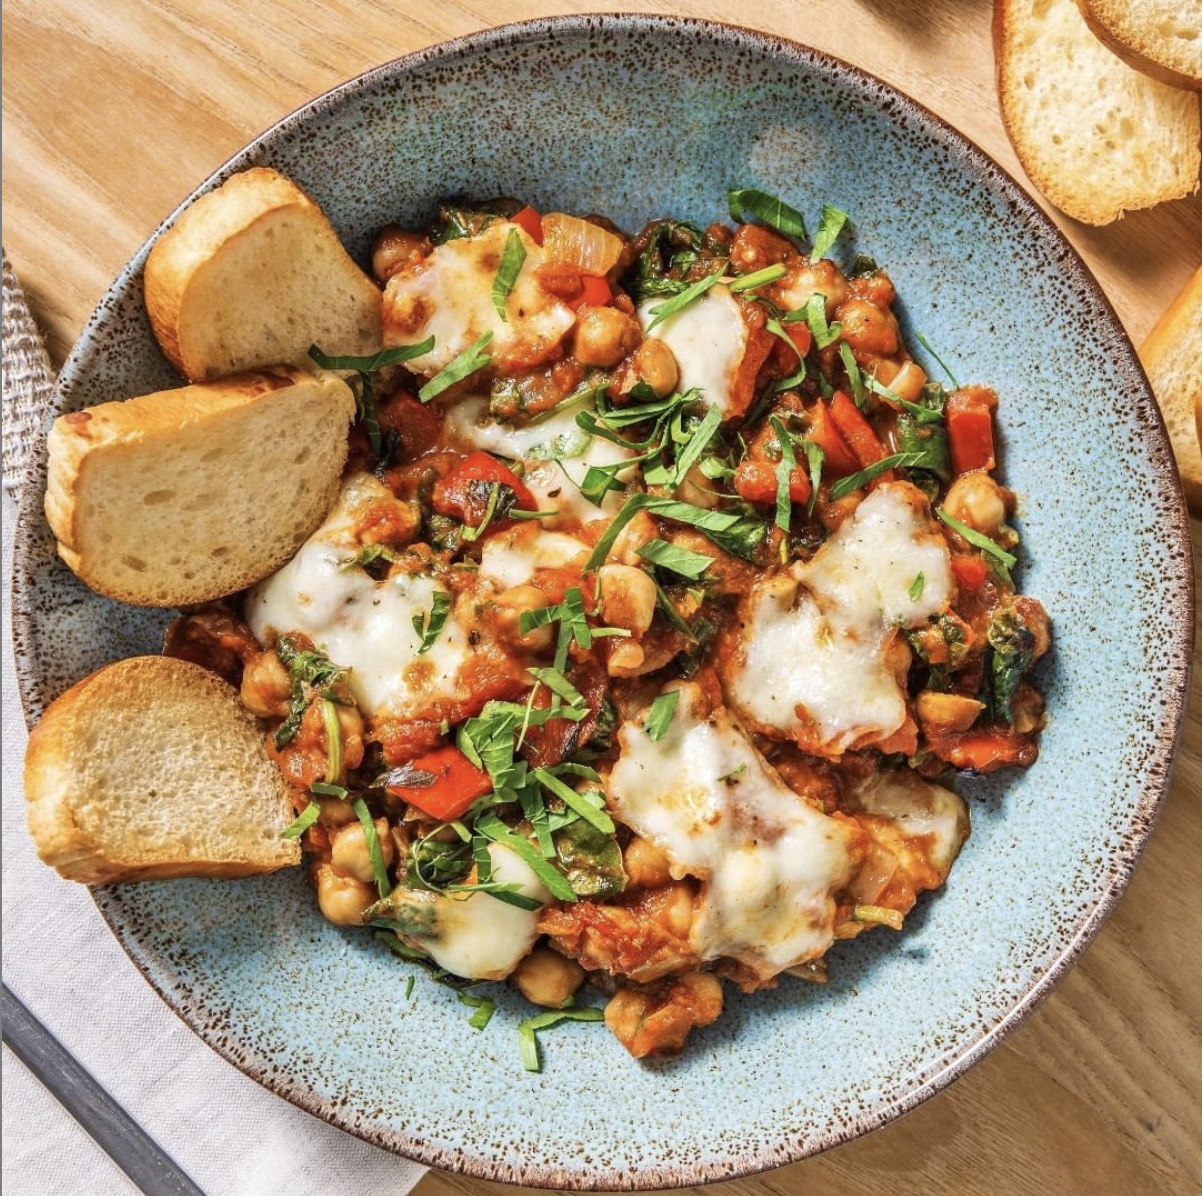 shakshuka in a bowl with bread on the side